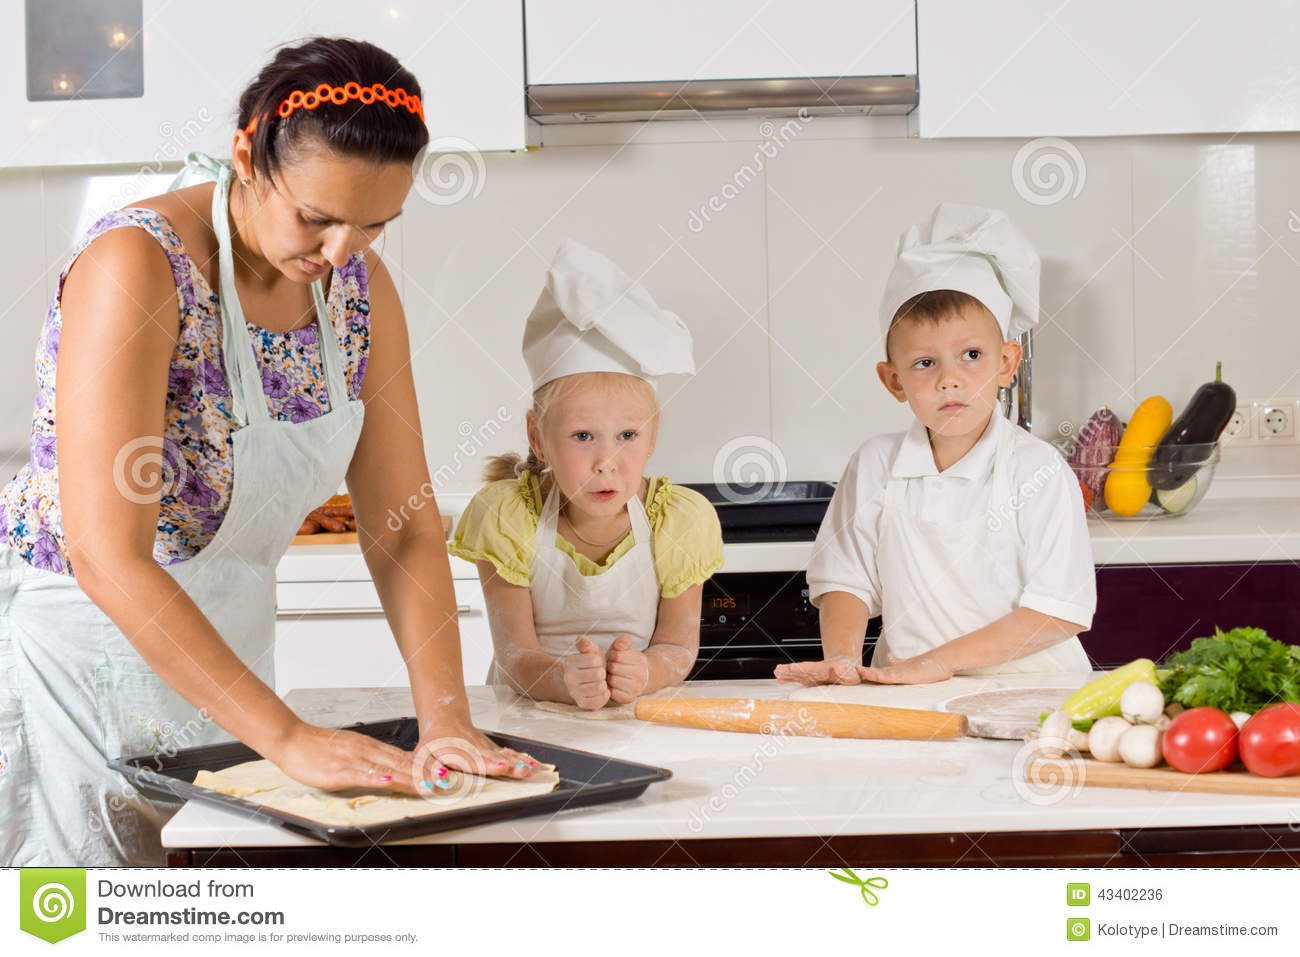 essay on helping mother in kitchen